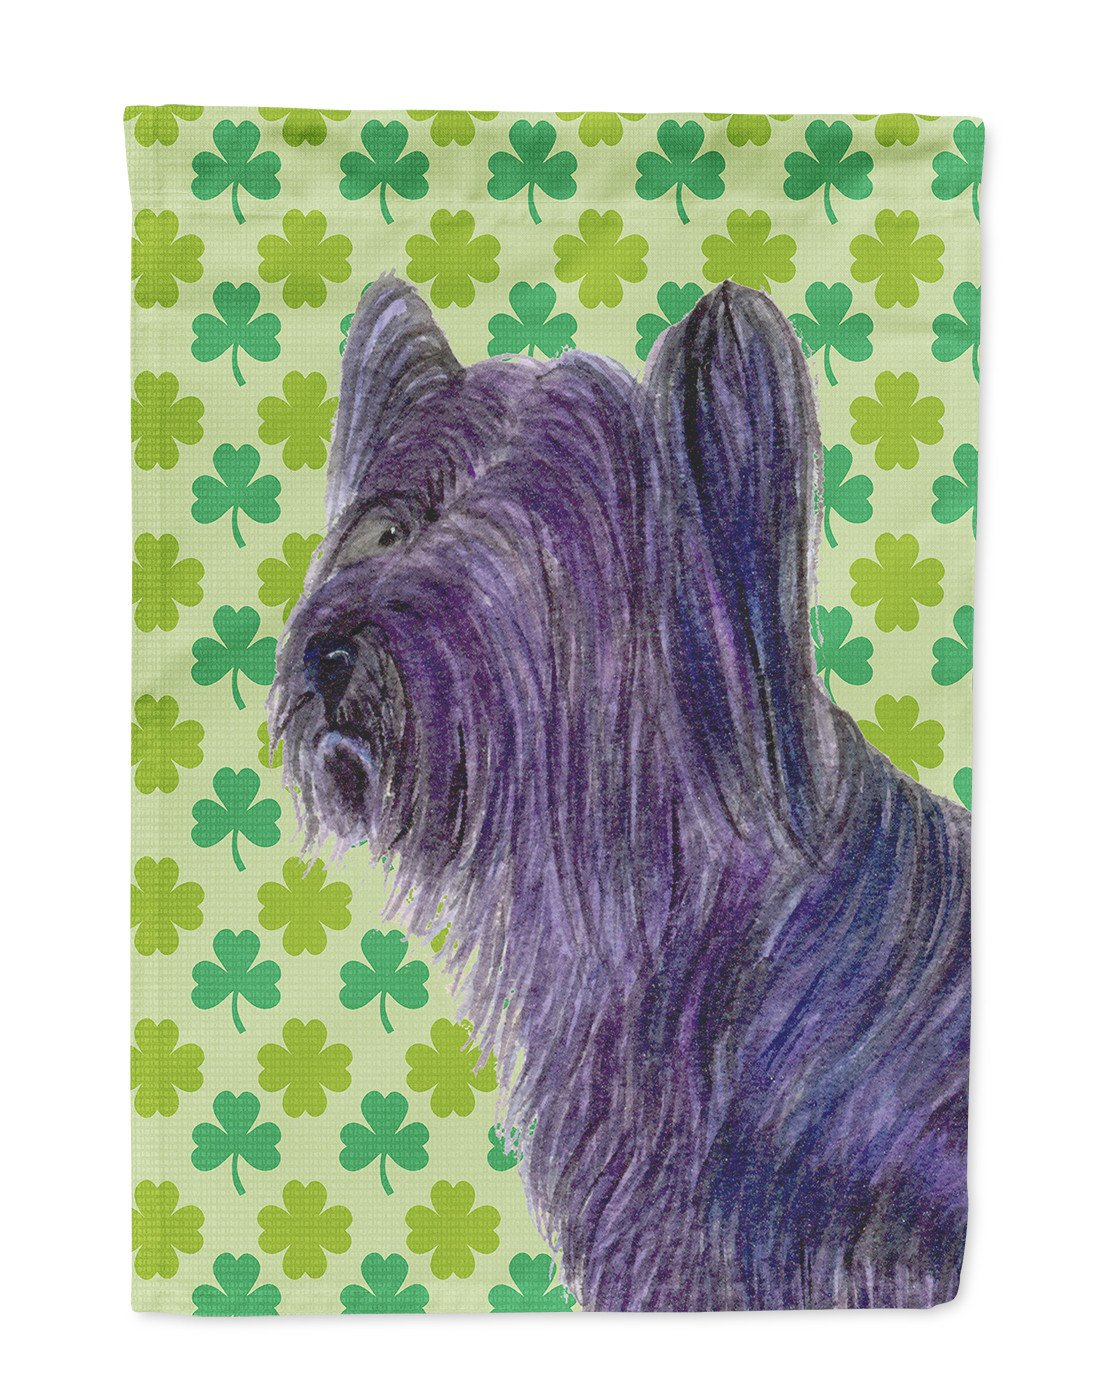 Skye Terrier St. Patrick's Day Shamrock Portrait Flag Garden Size by Caroline's Treasures